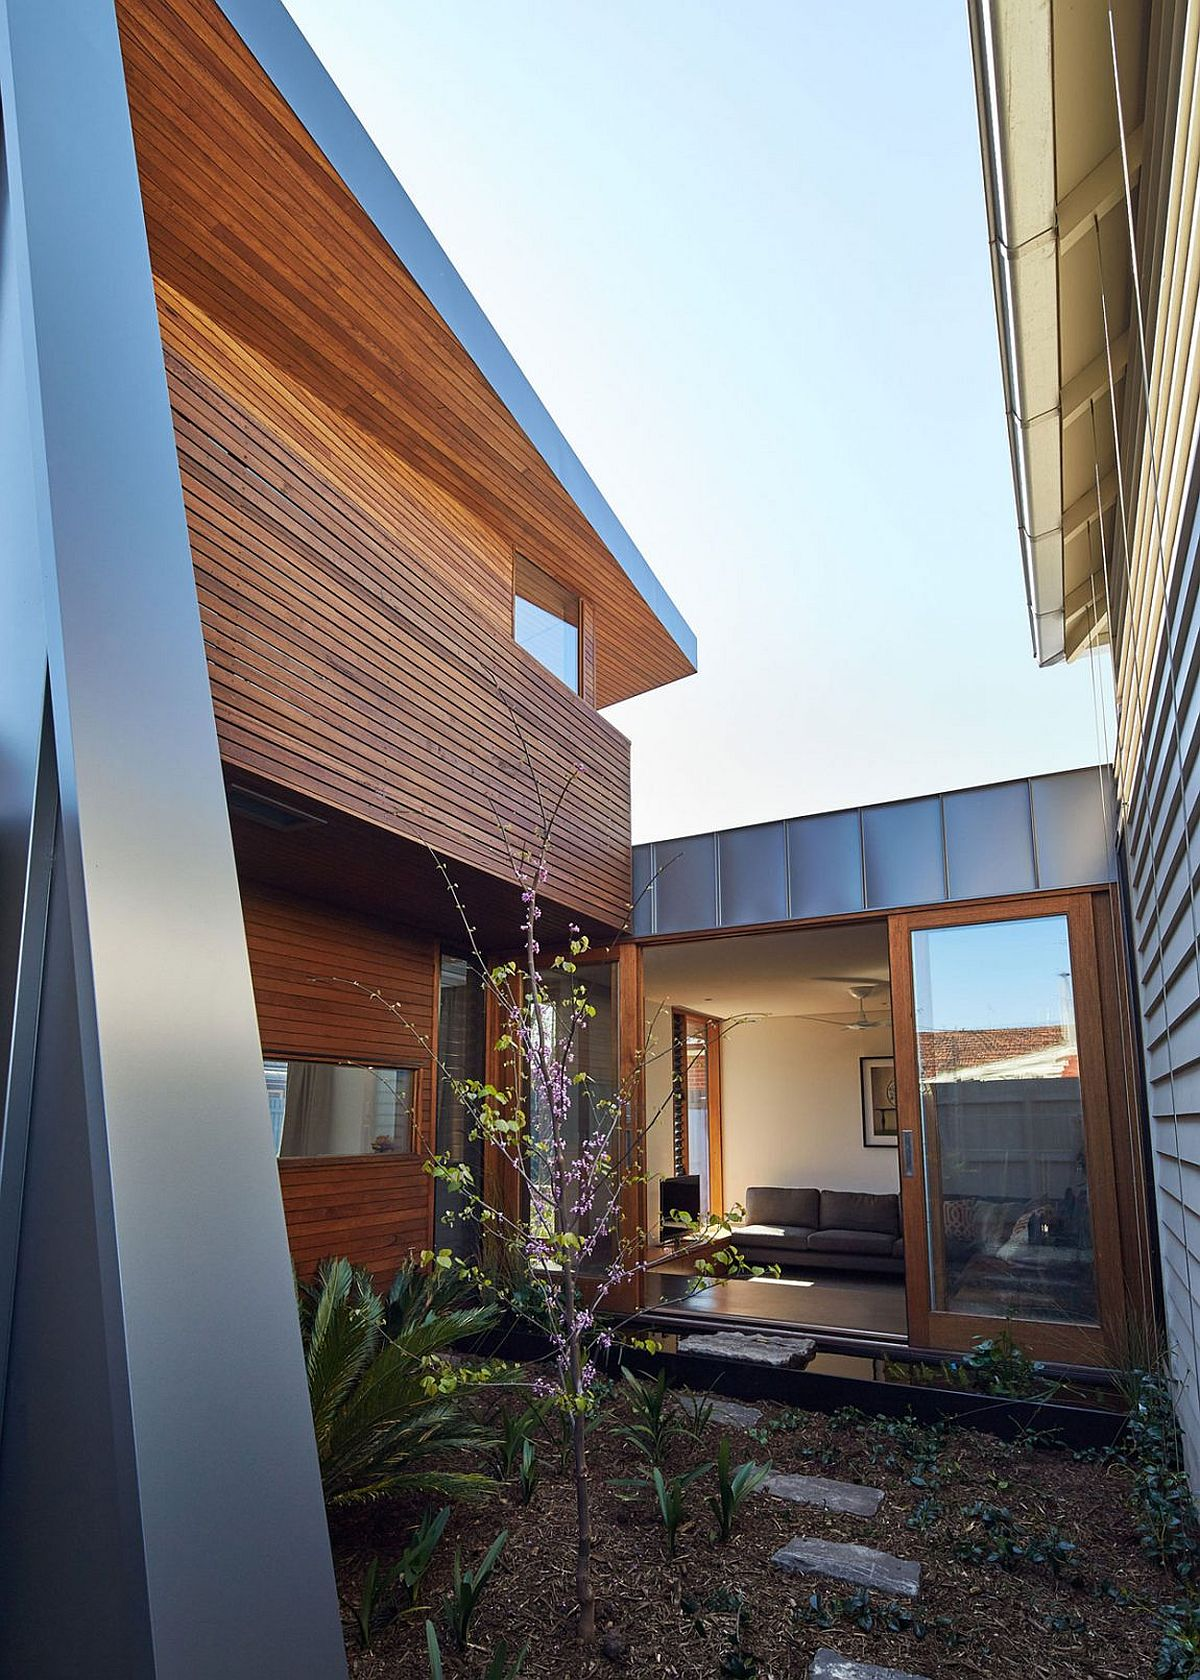 Central green courtyard of the Yarraville Garden House